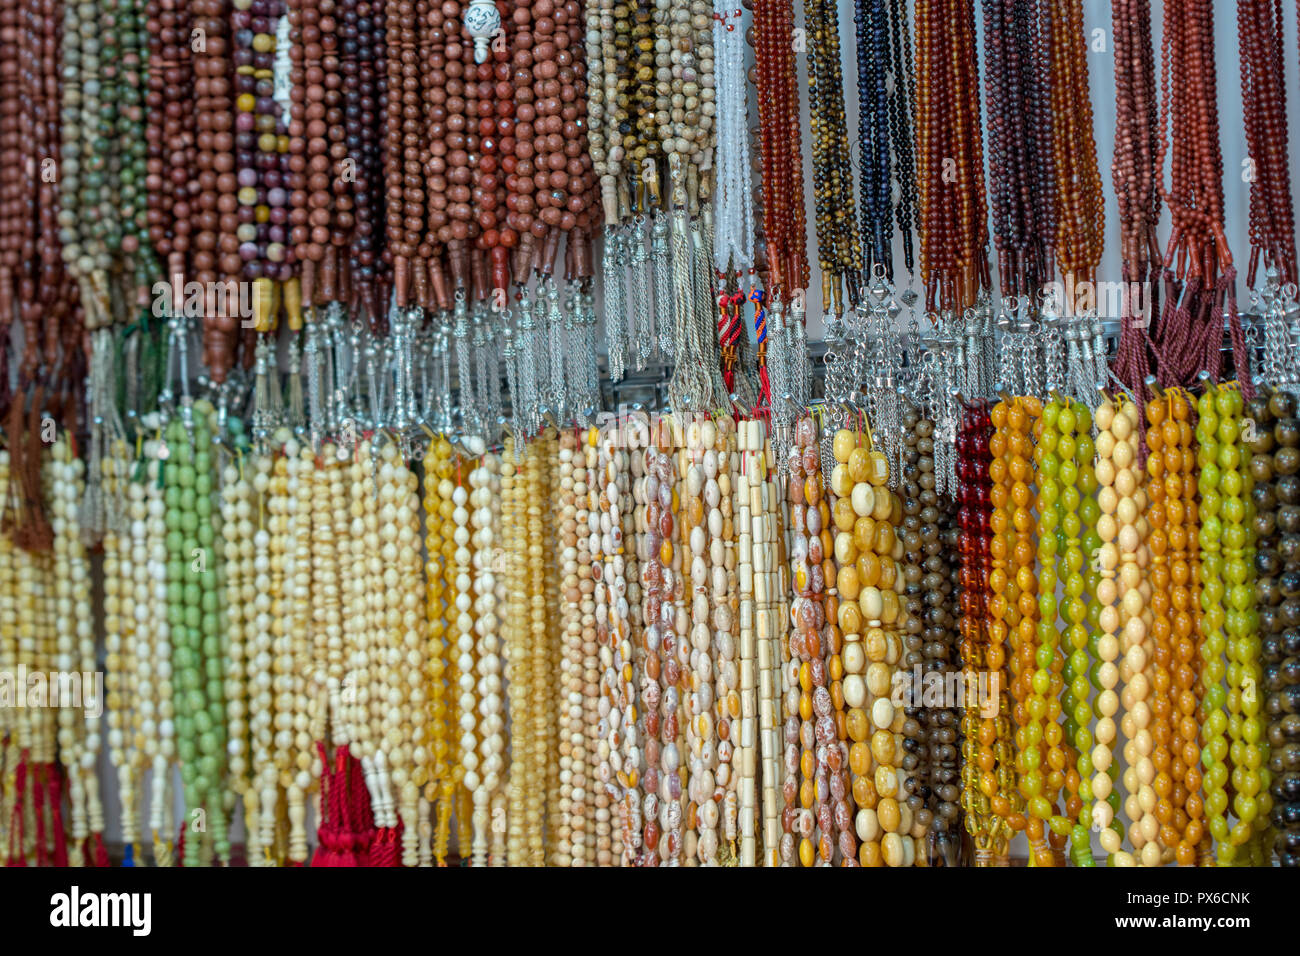 Islamic rosary with different materials, colors and shapes Stock Photo